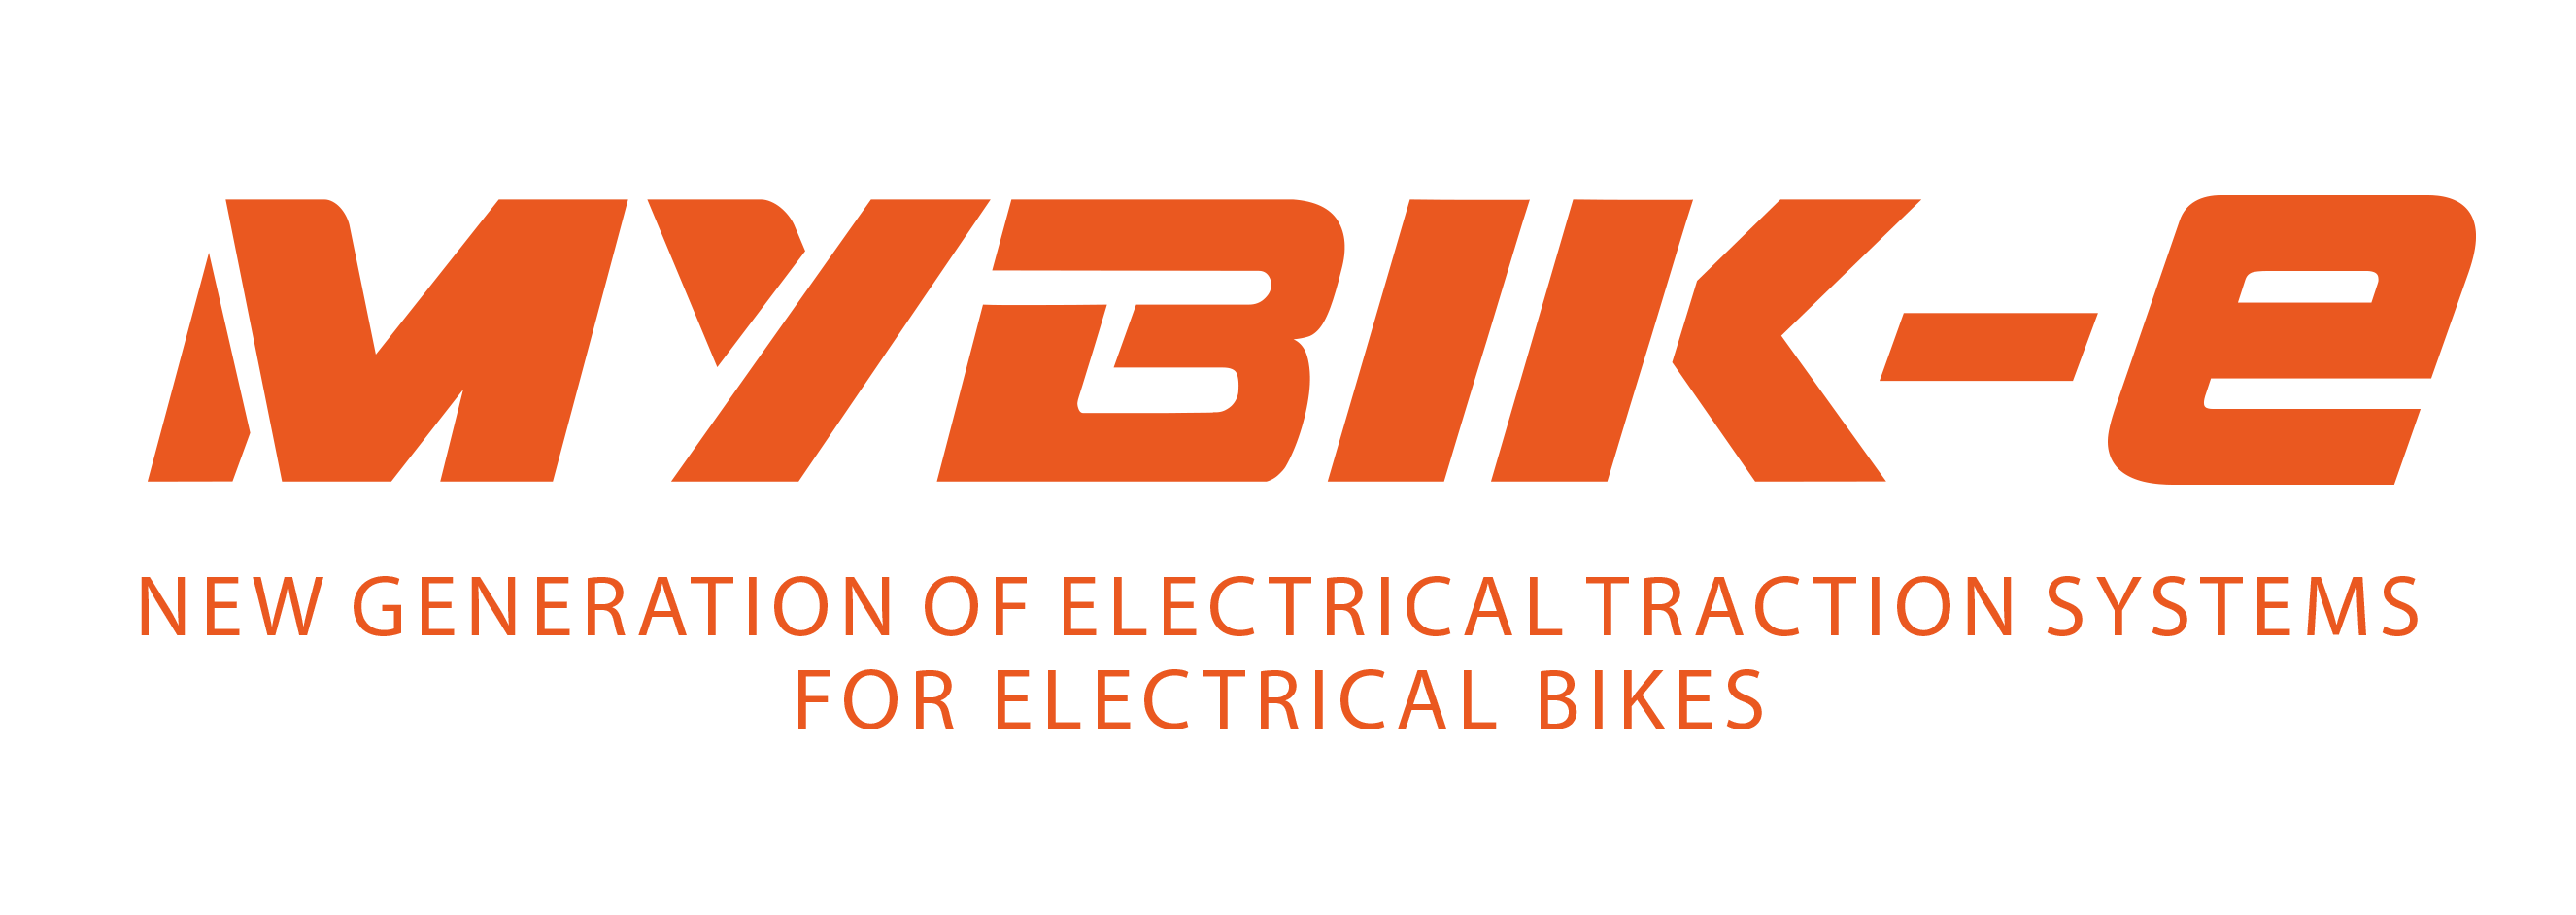 MyBik-e - New generation of electrical traction systems for electrical bikes